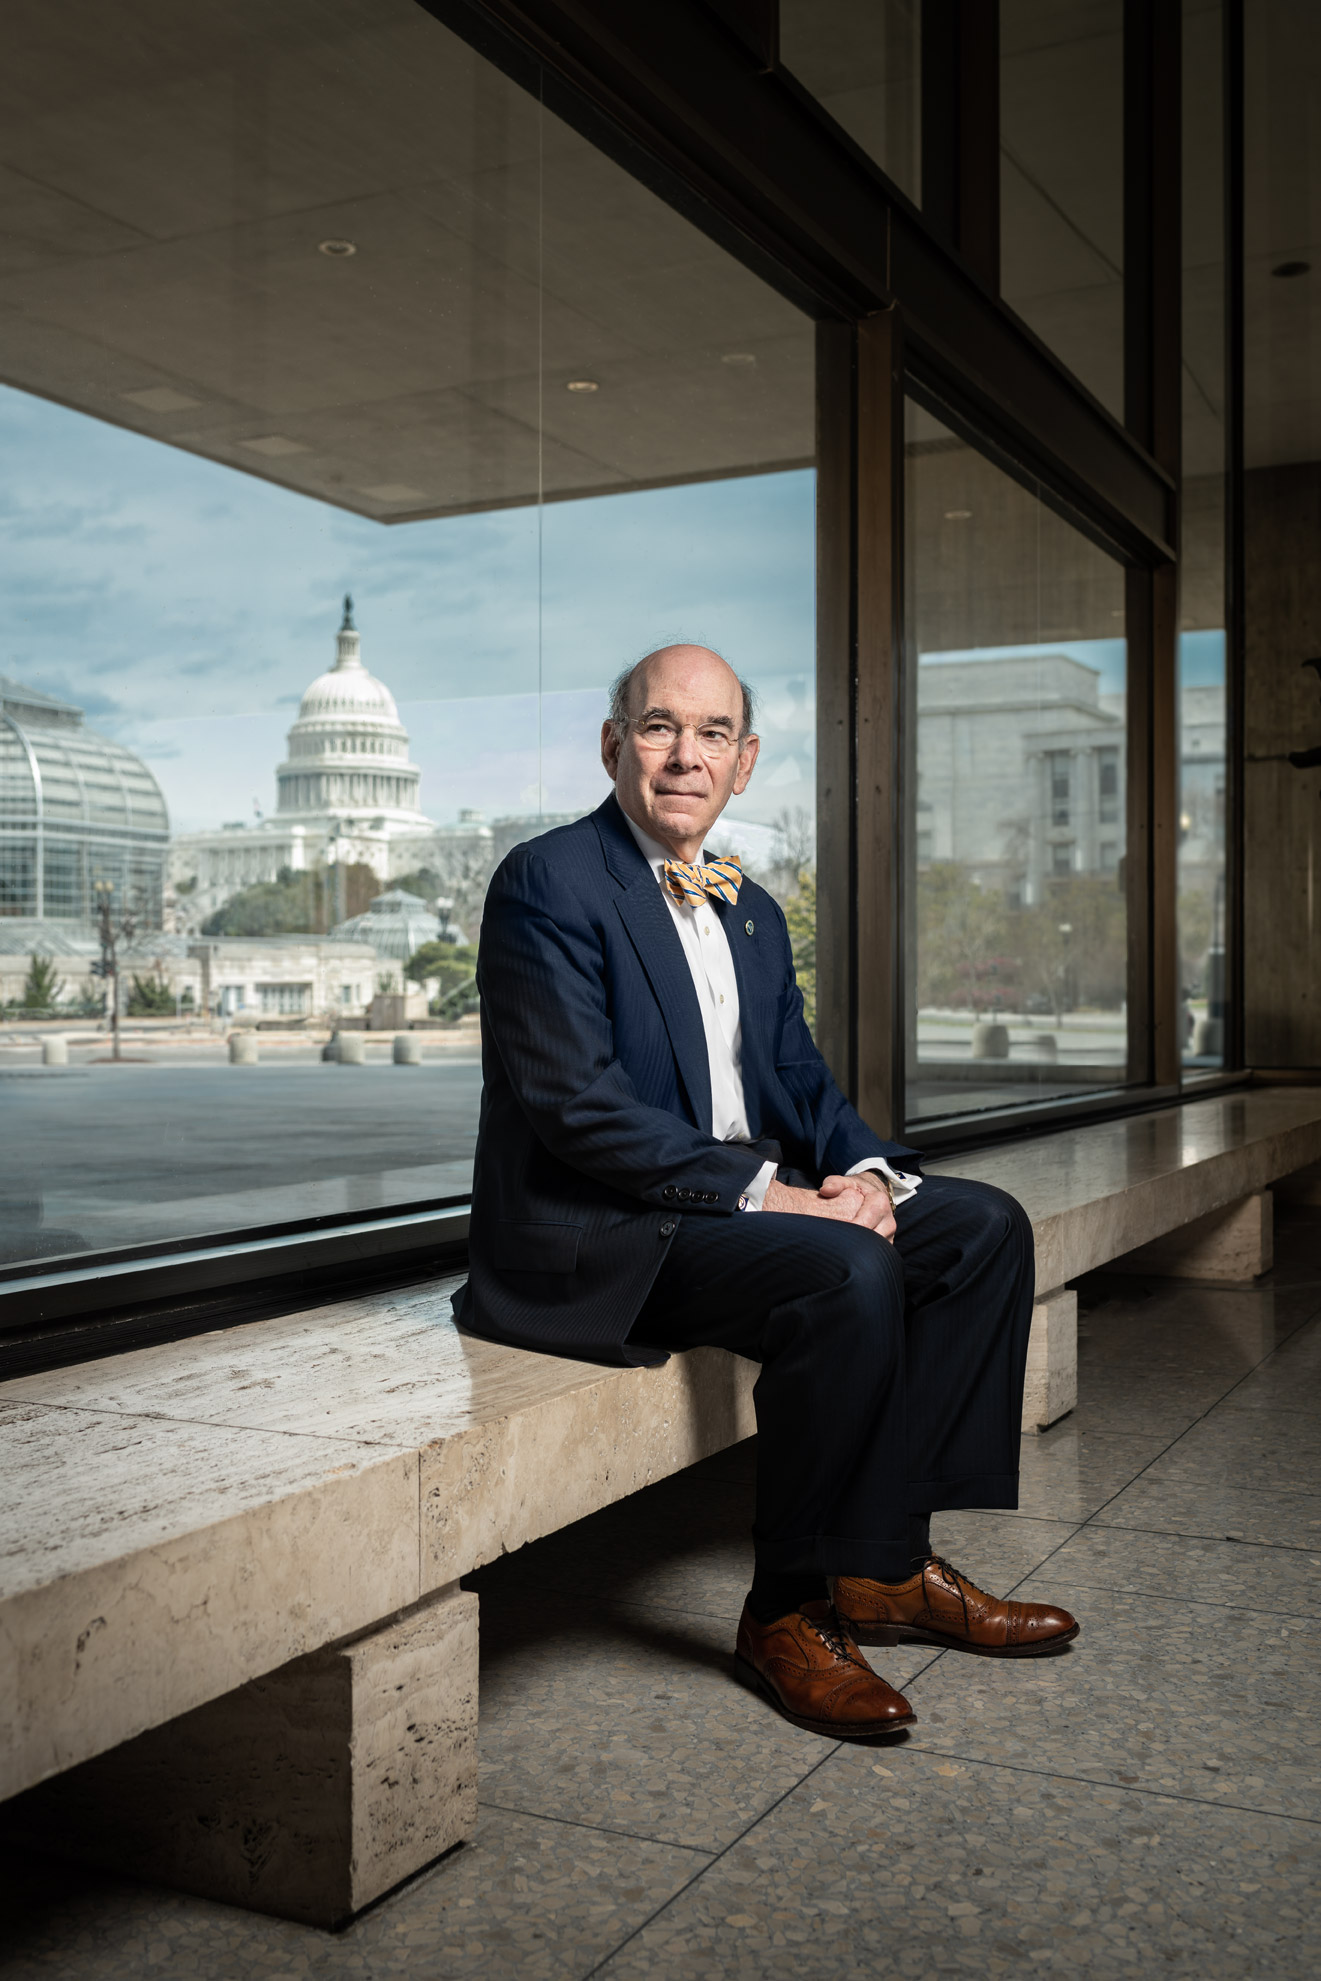 Robert Charrow, General Counsel, seated on a bench in the HHS lobby